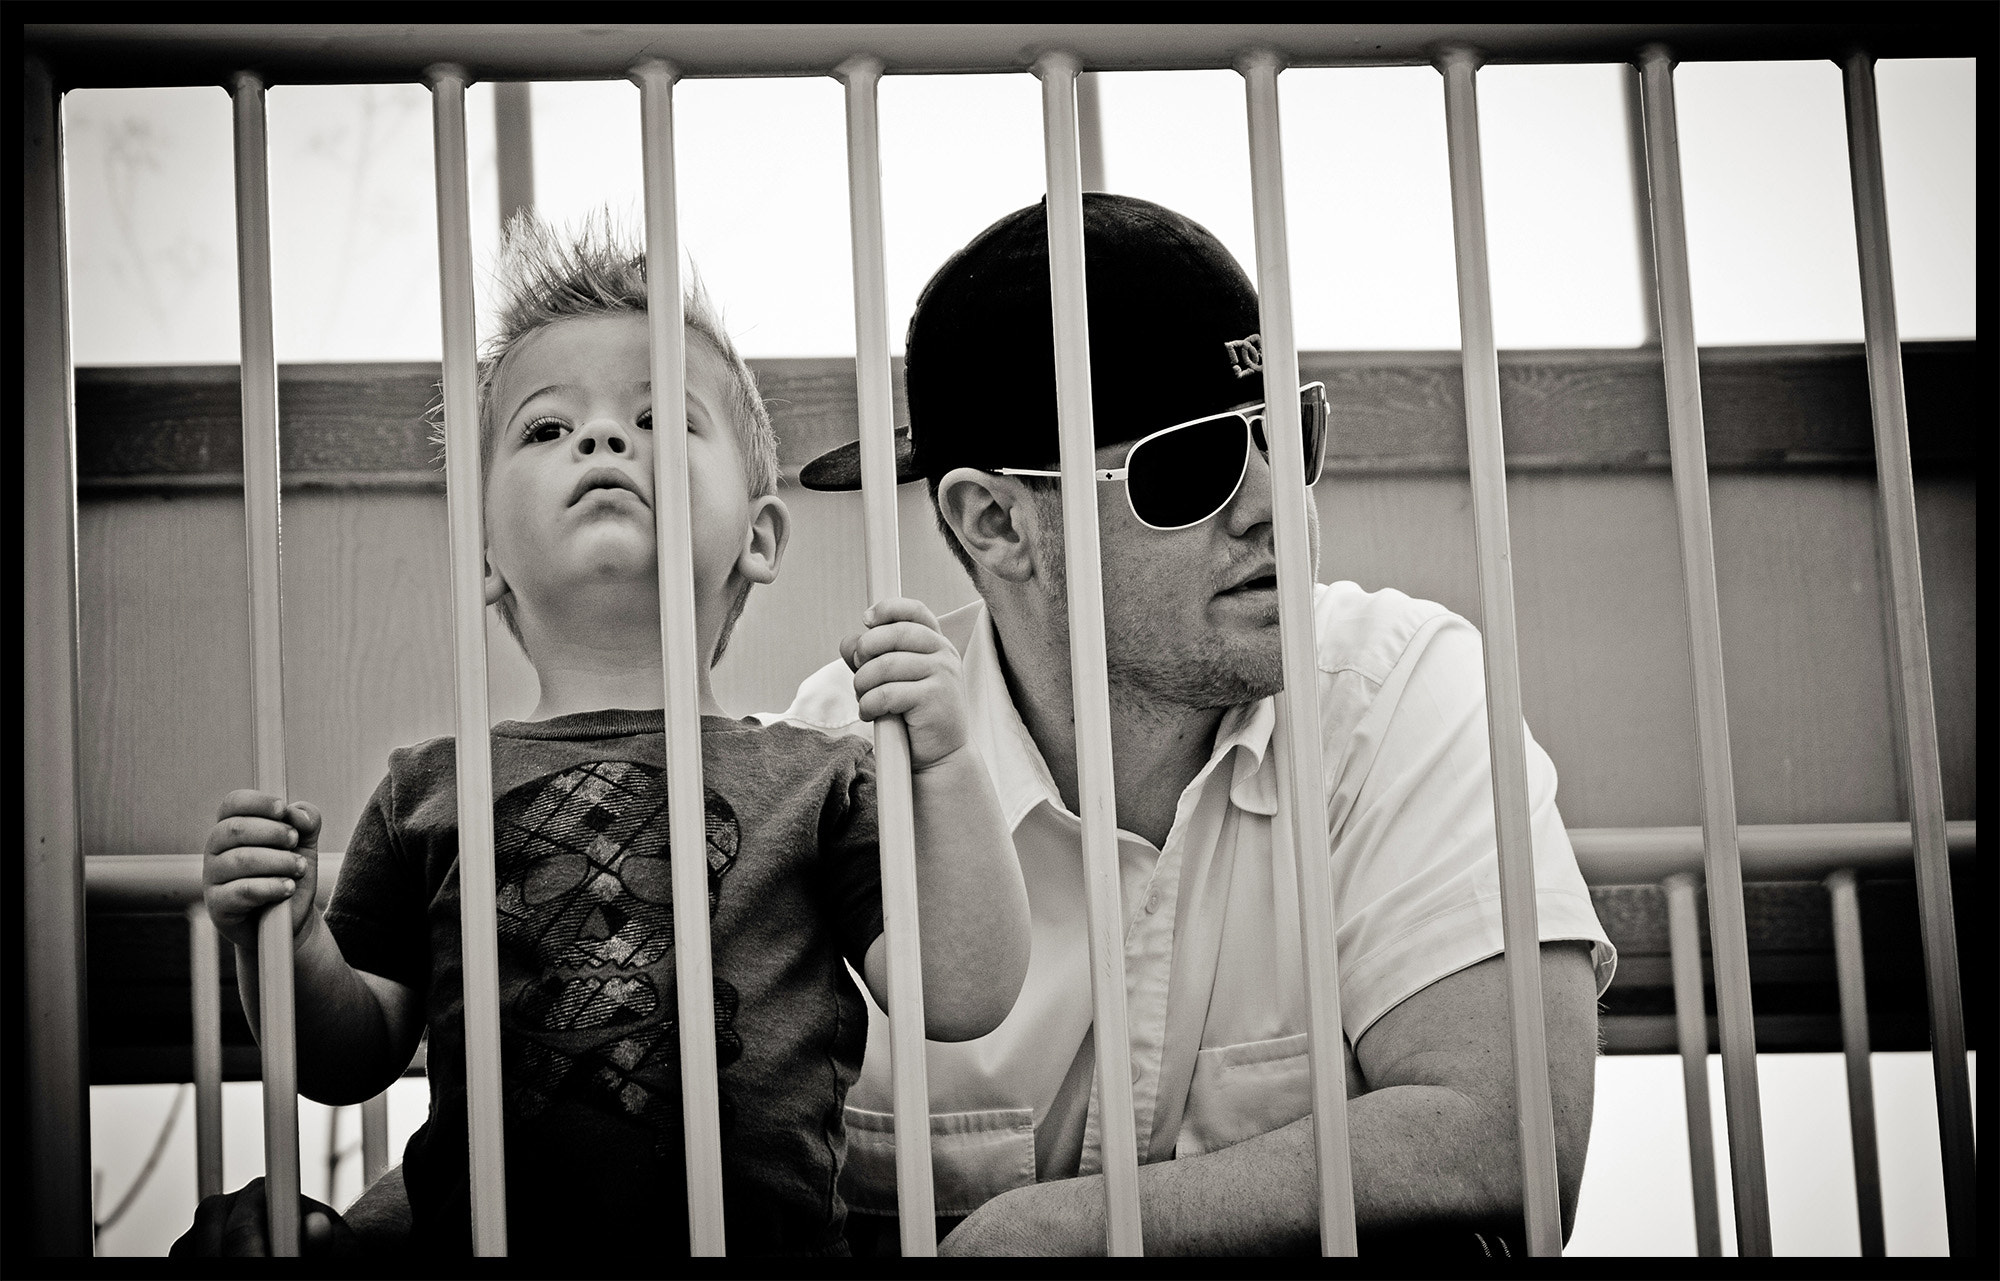 Photograph Behind Bars by Chet Carter on 500px